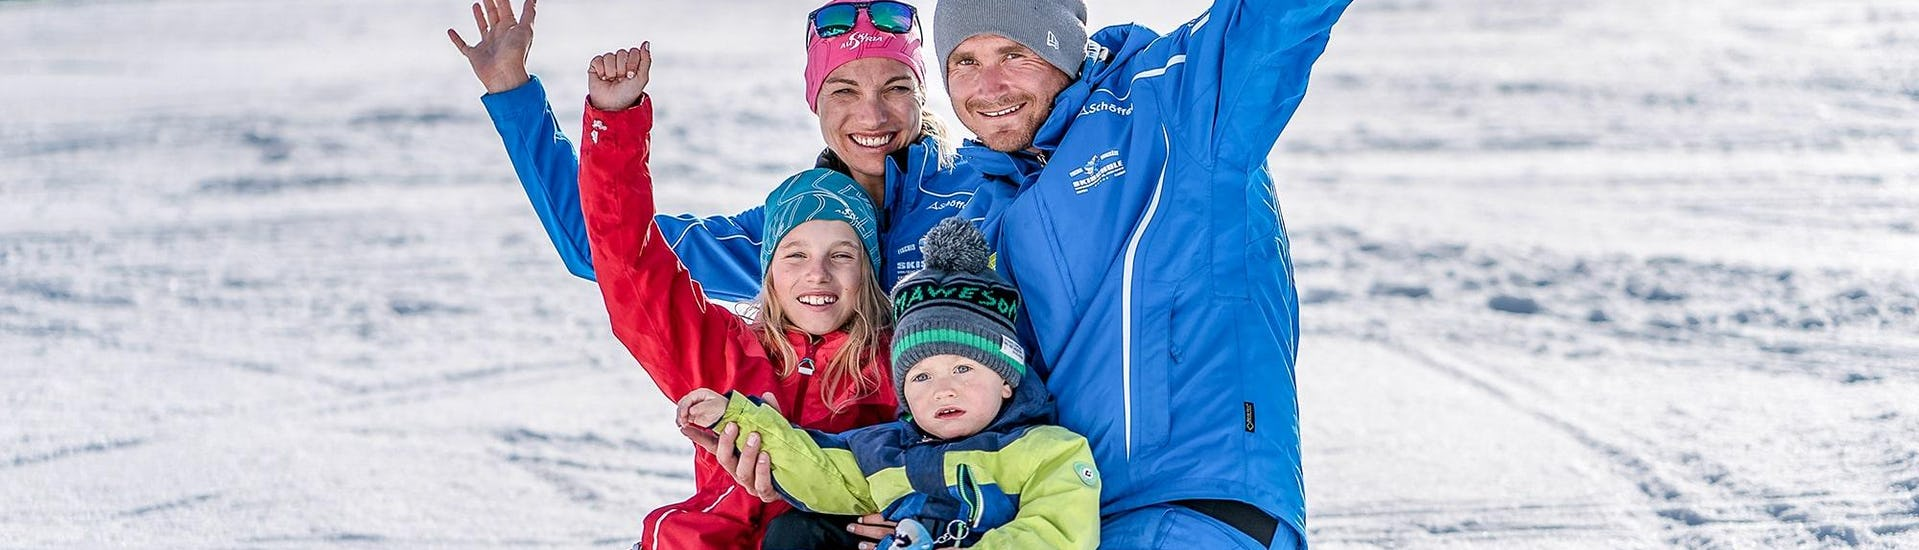 Ski Instructor Private for the Family - All Levels